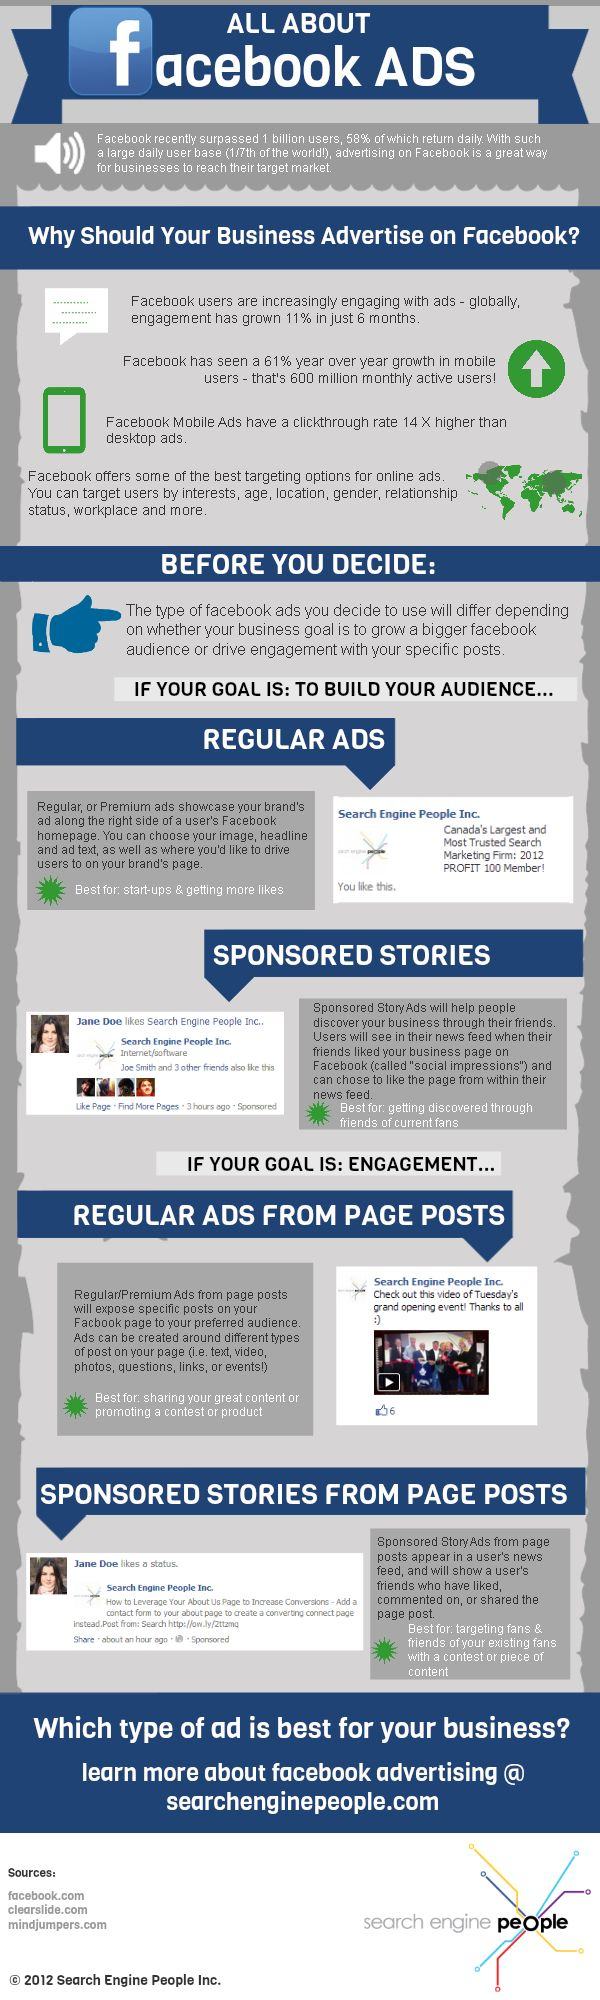 All about #Facebook ads #infographic. More Facebook Ad tips at http://getonthemap.us/facebook/blog #573tips #facebook